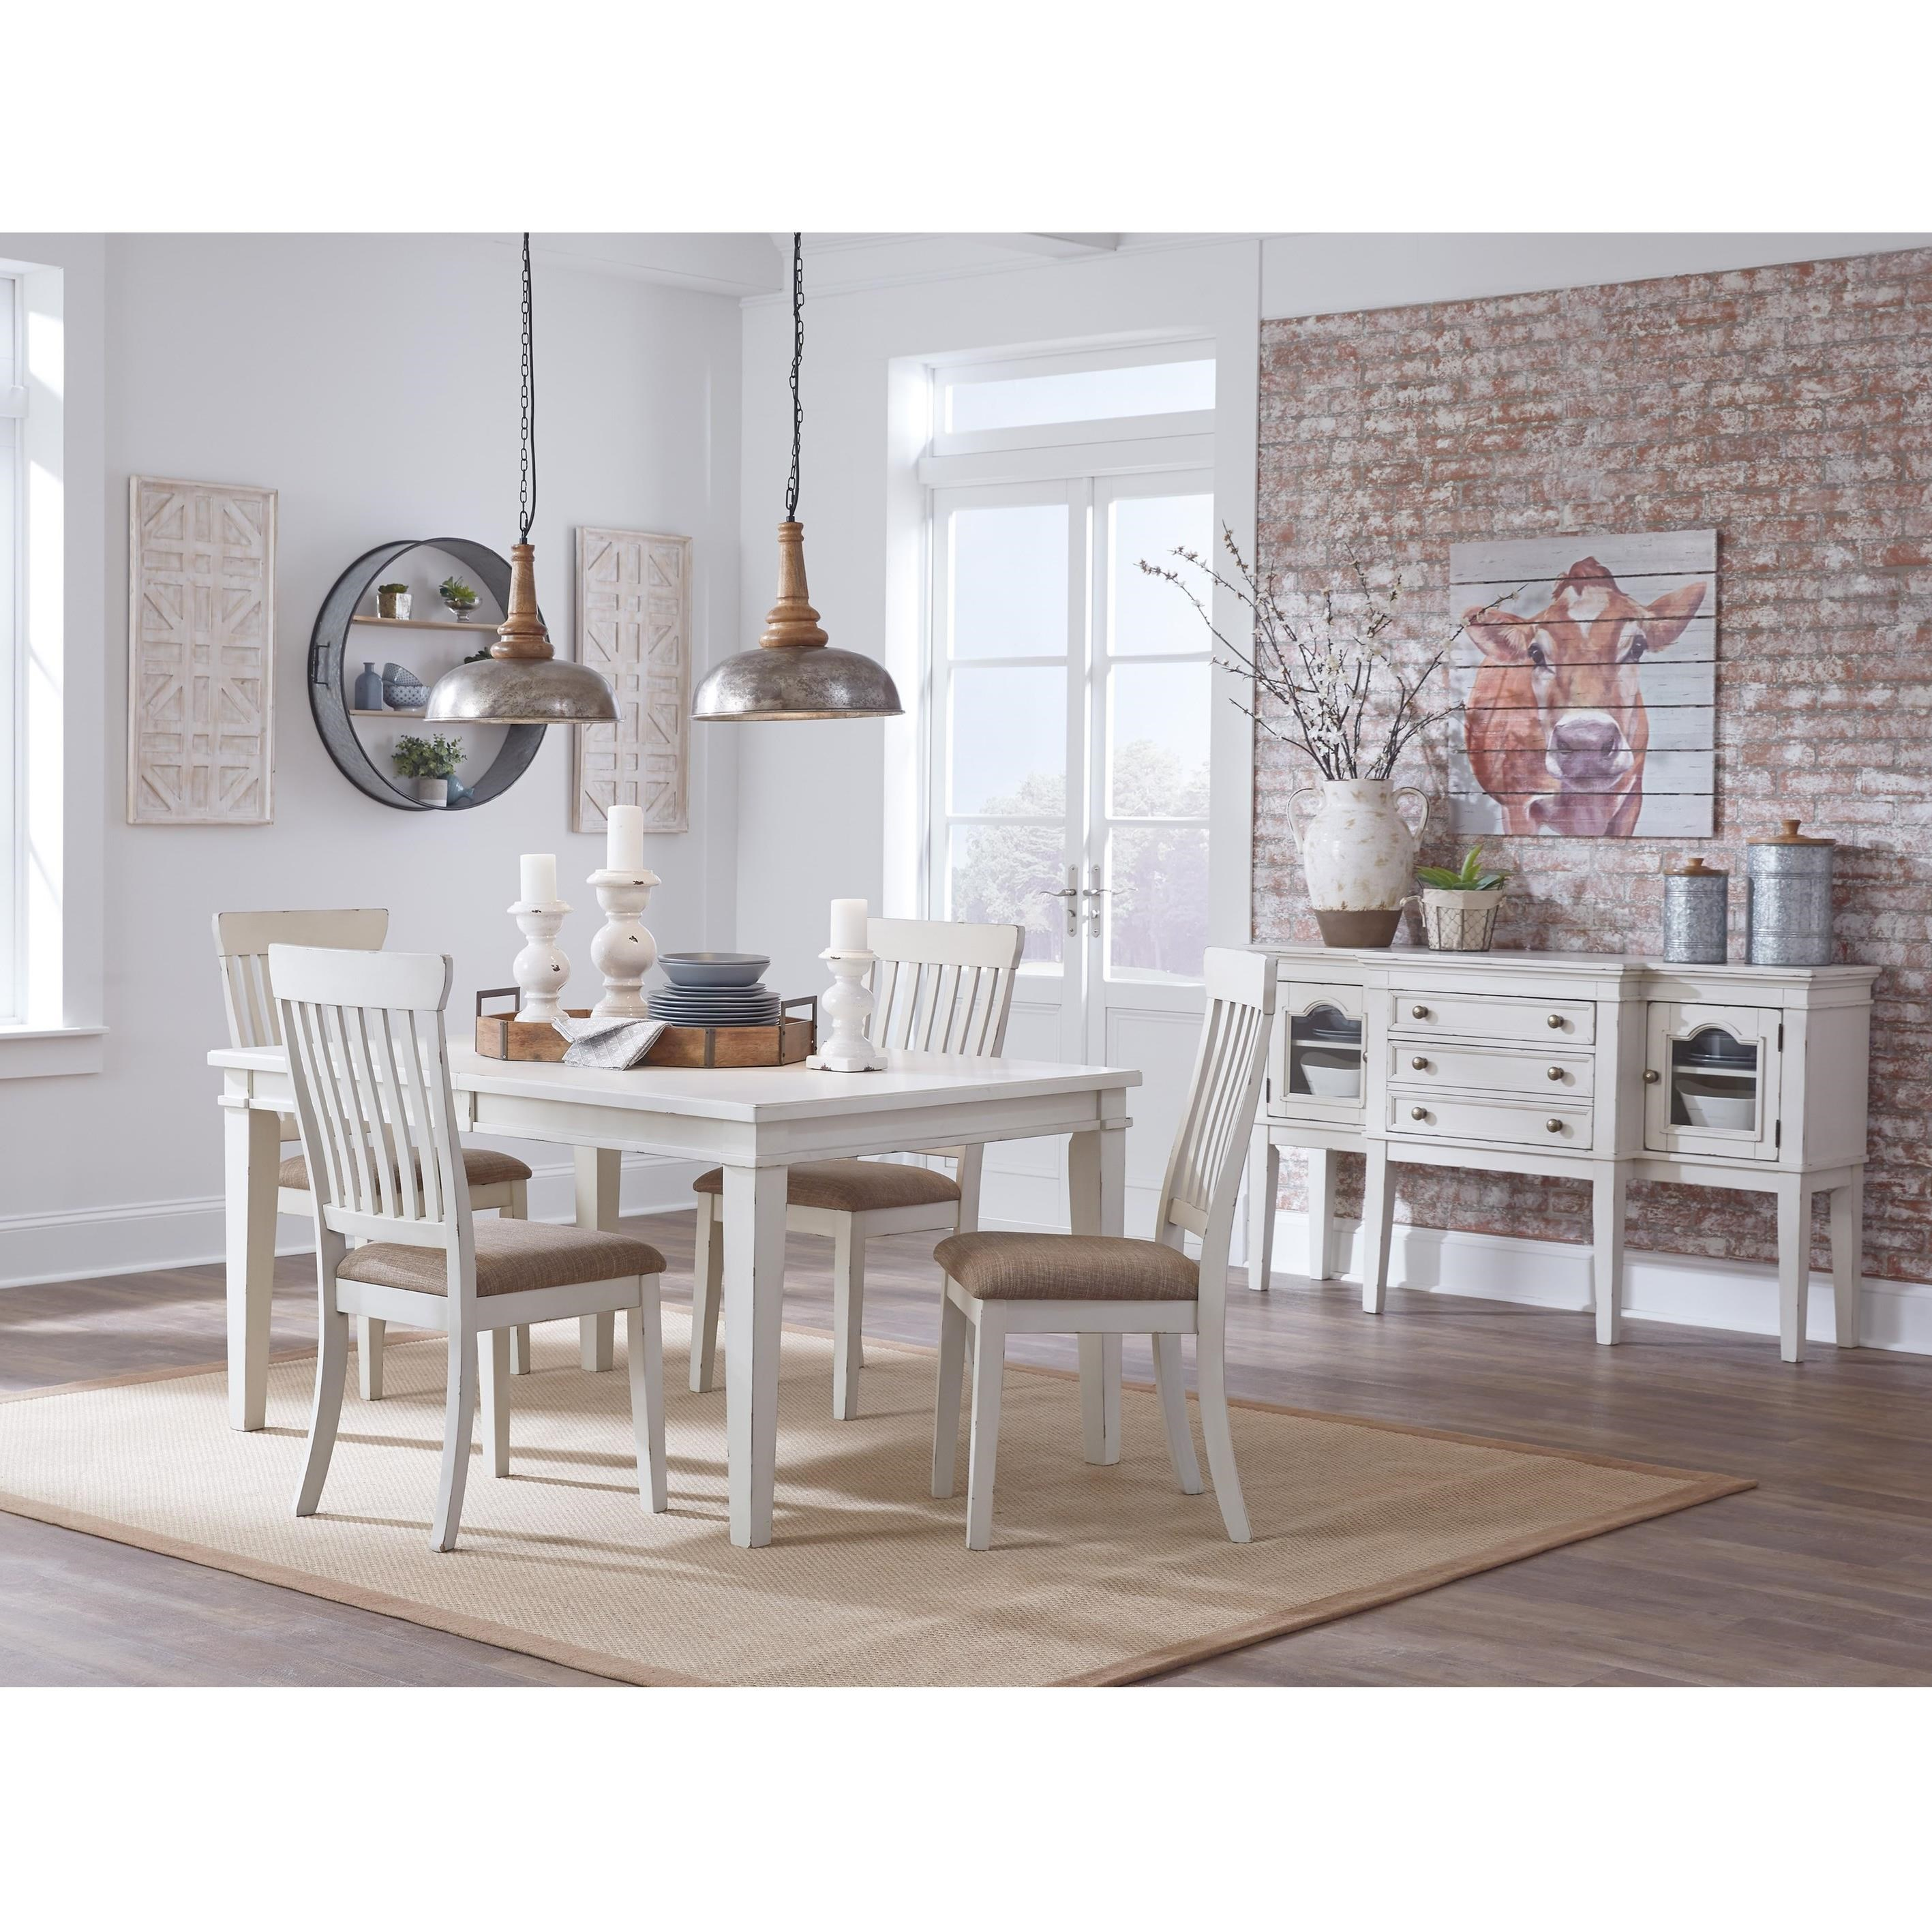 casual dining room group by signature design by ashley. Black Bedroom Furniture Sets. Home Design Ideas